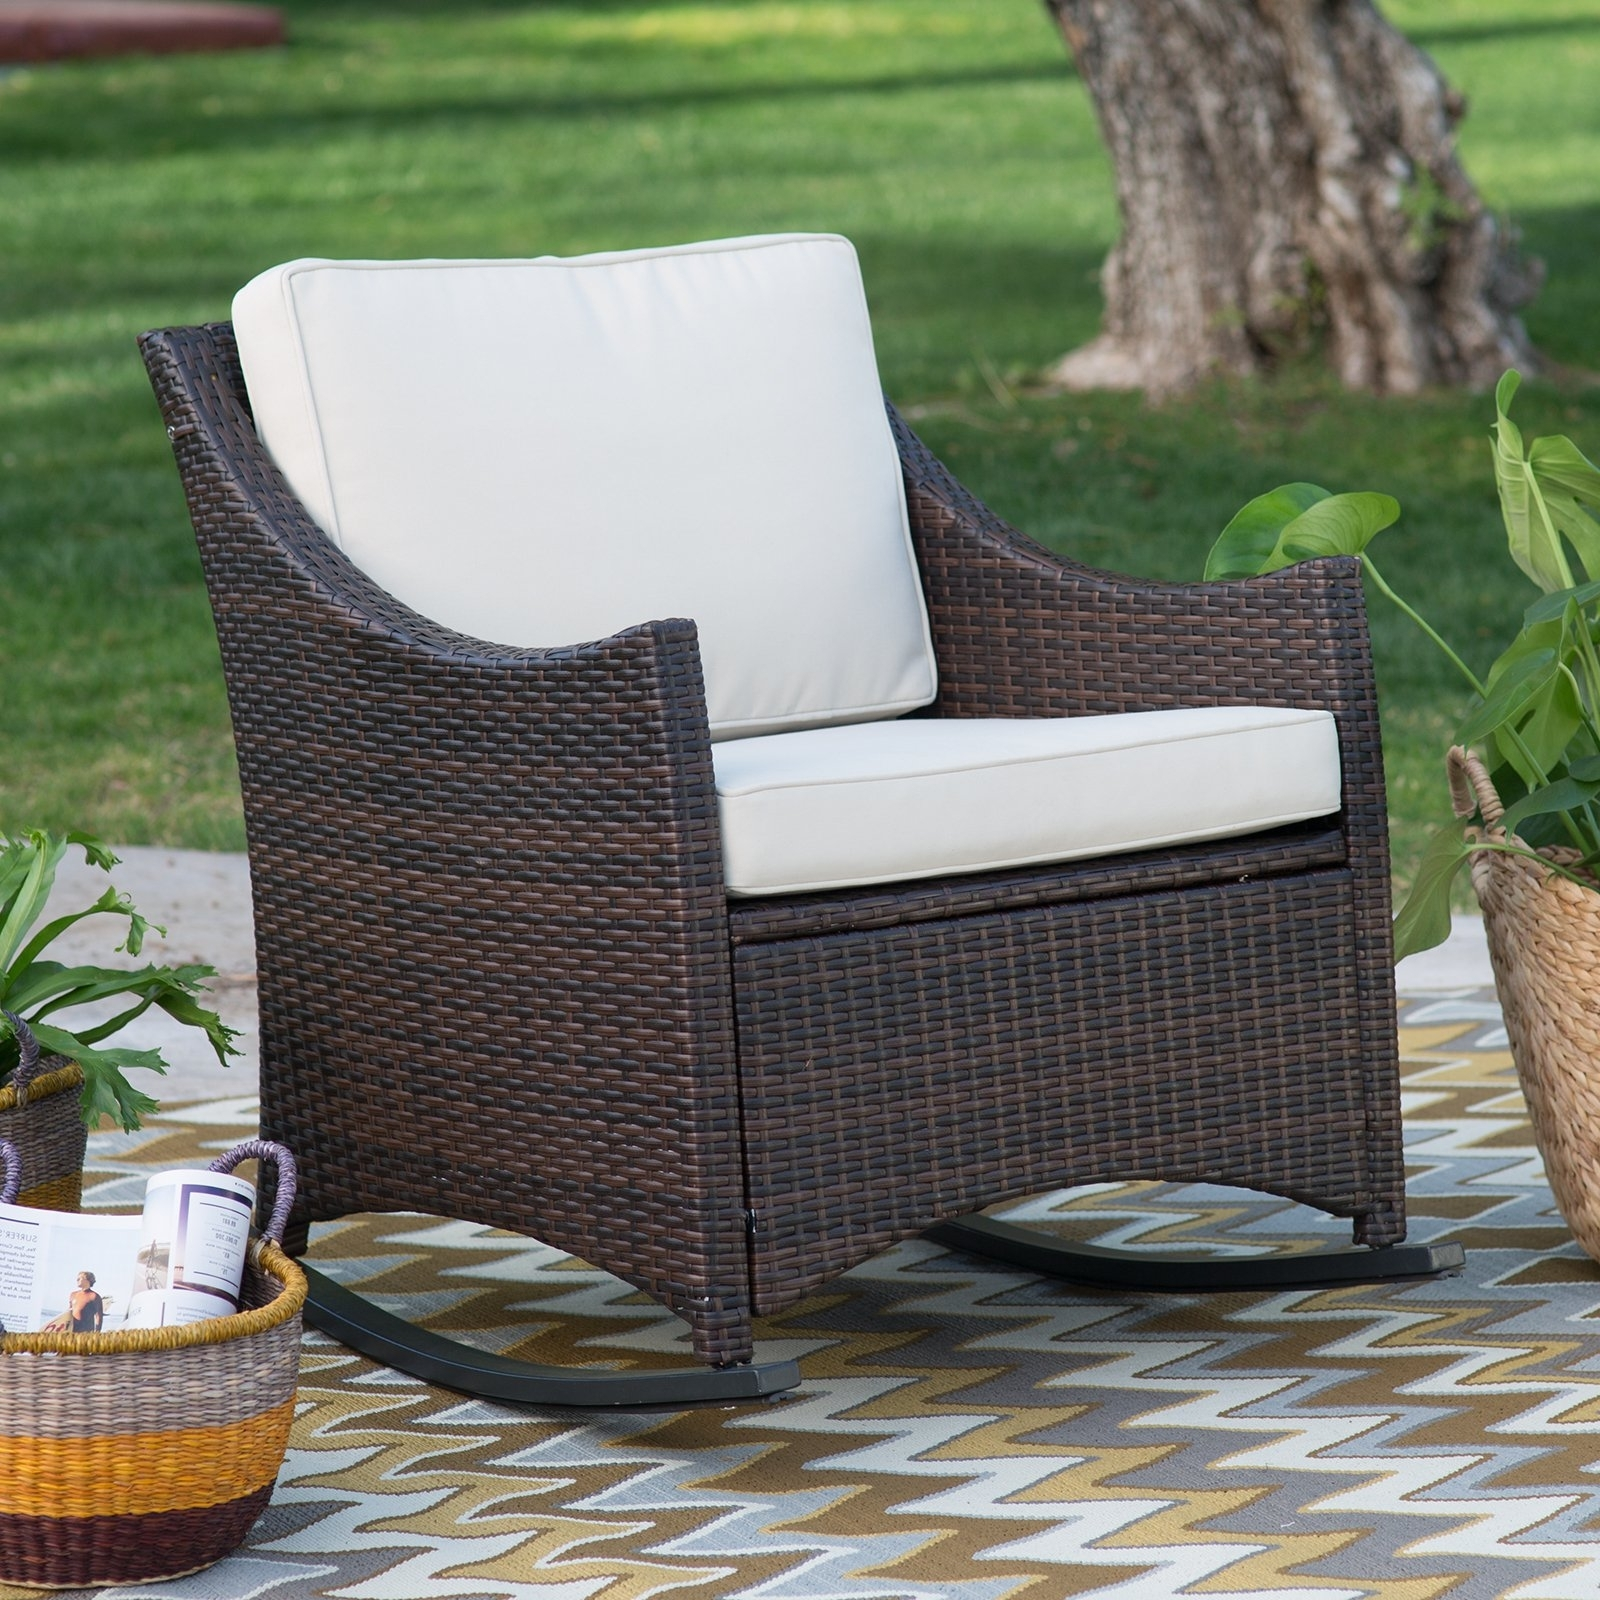 Outdoor Rocking Chairs For Sale Traditional Rocking Chair Intended For Trendy Outdoor Wicker Rocking Chairs (View 7 of 15)